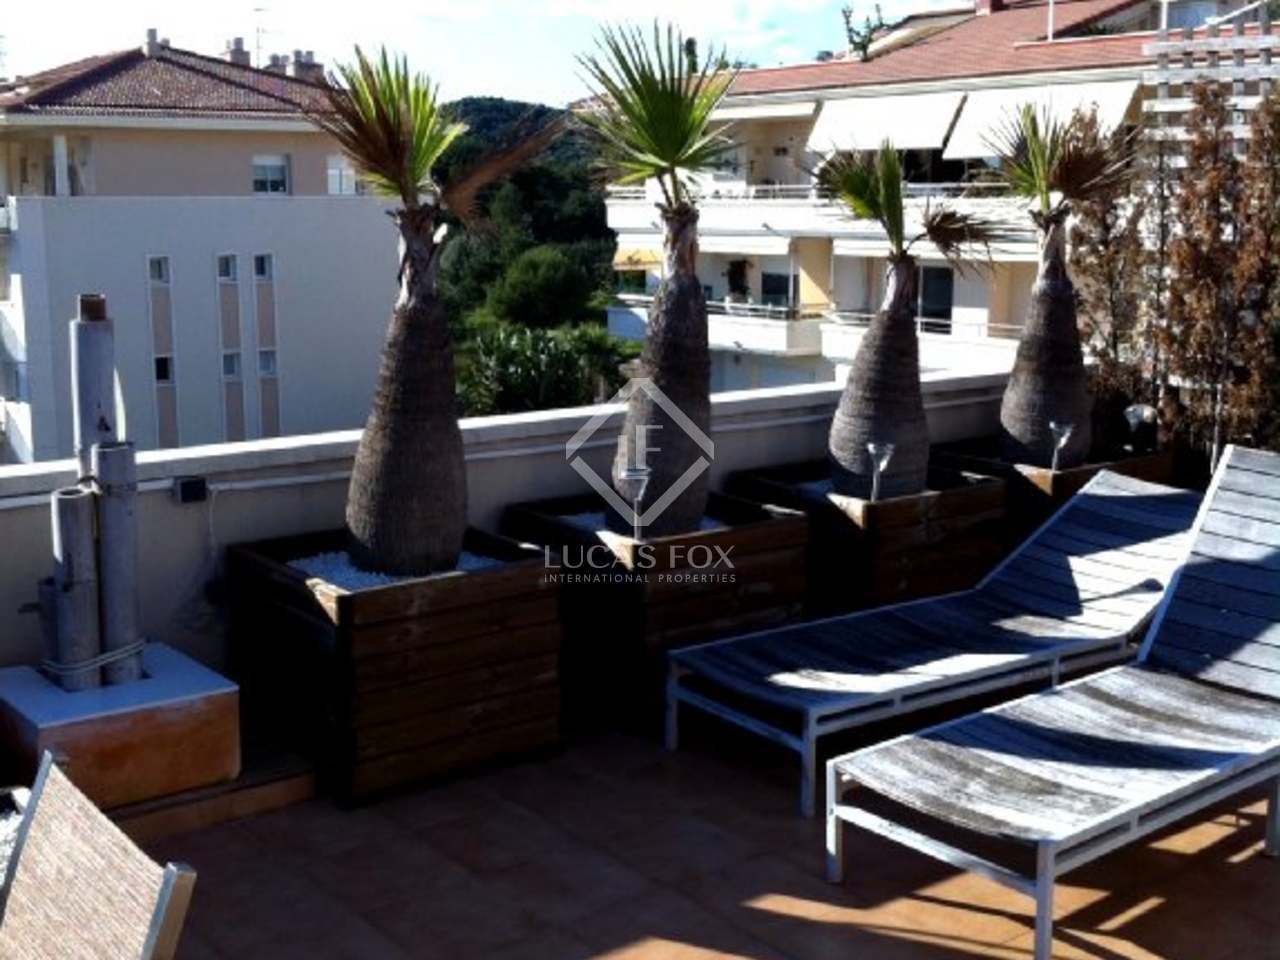 Duplex penthouse apartment for sale in Sitges